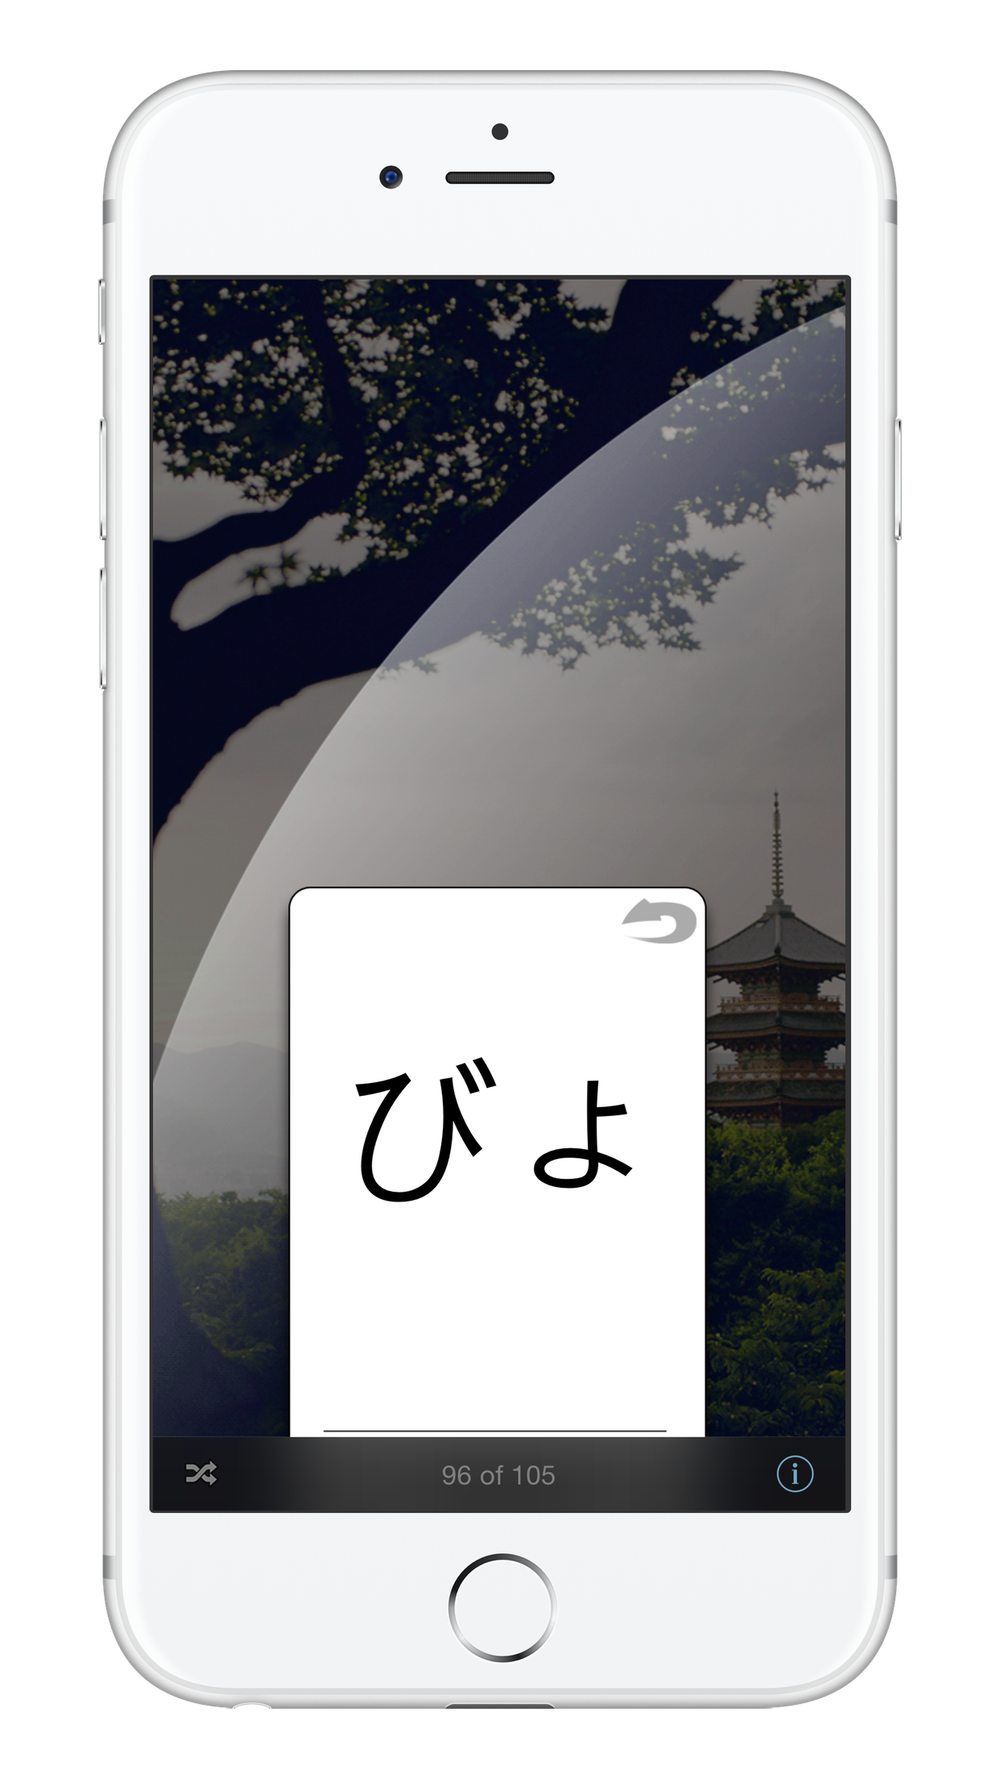 Hiragana screenshot 4.png